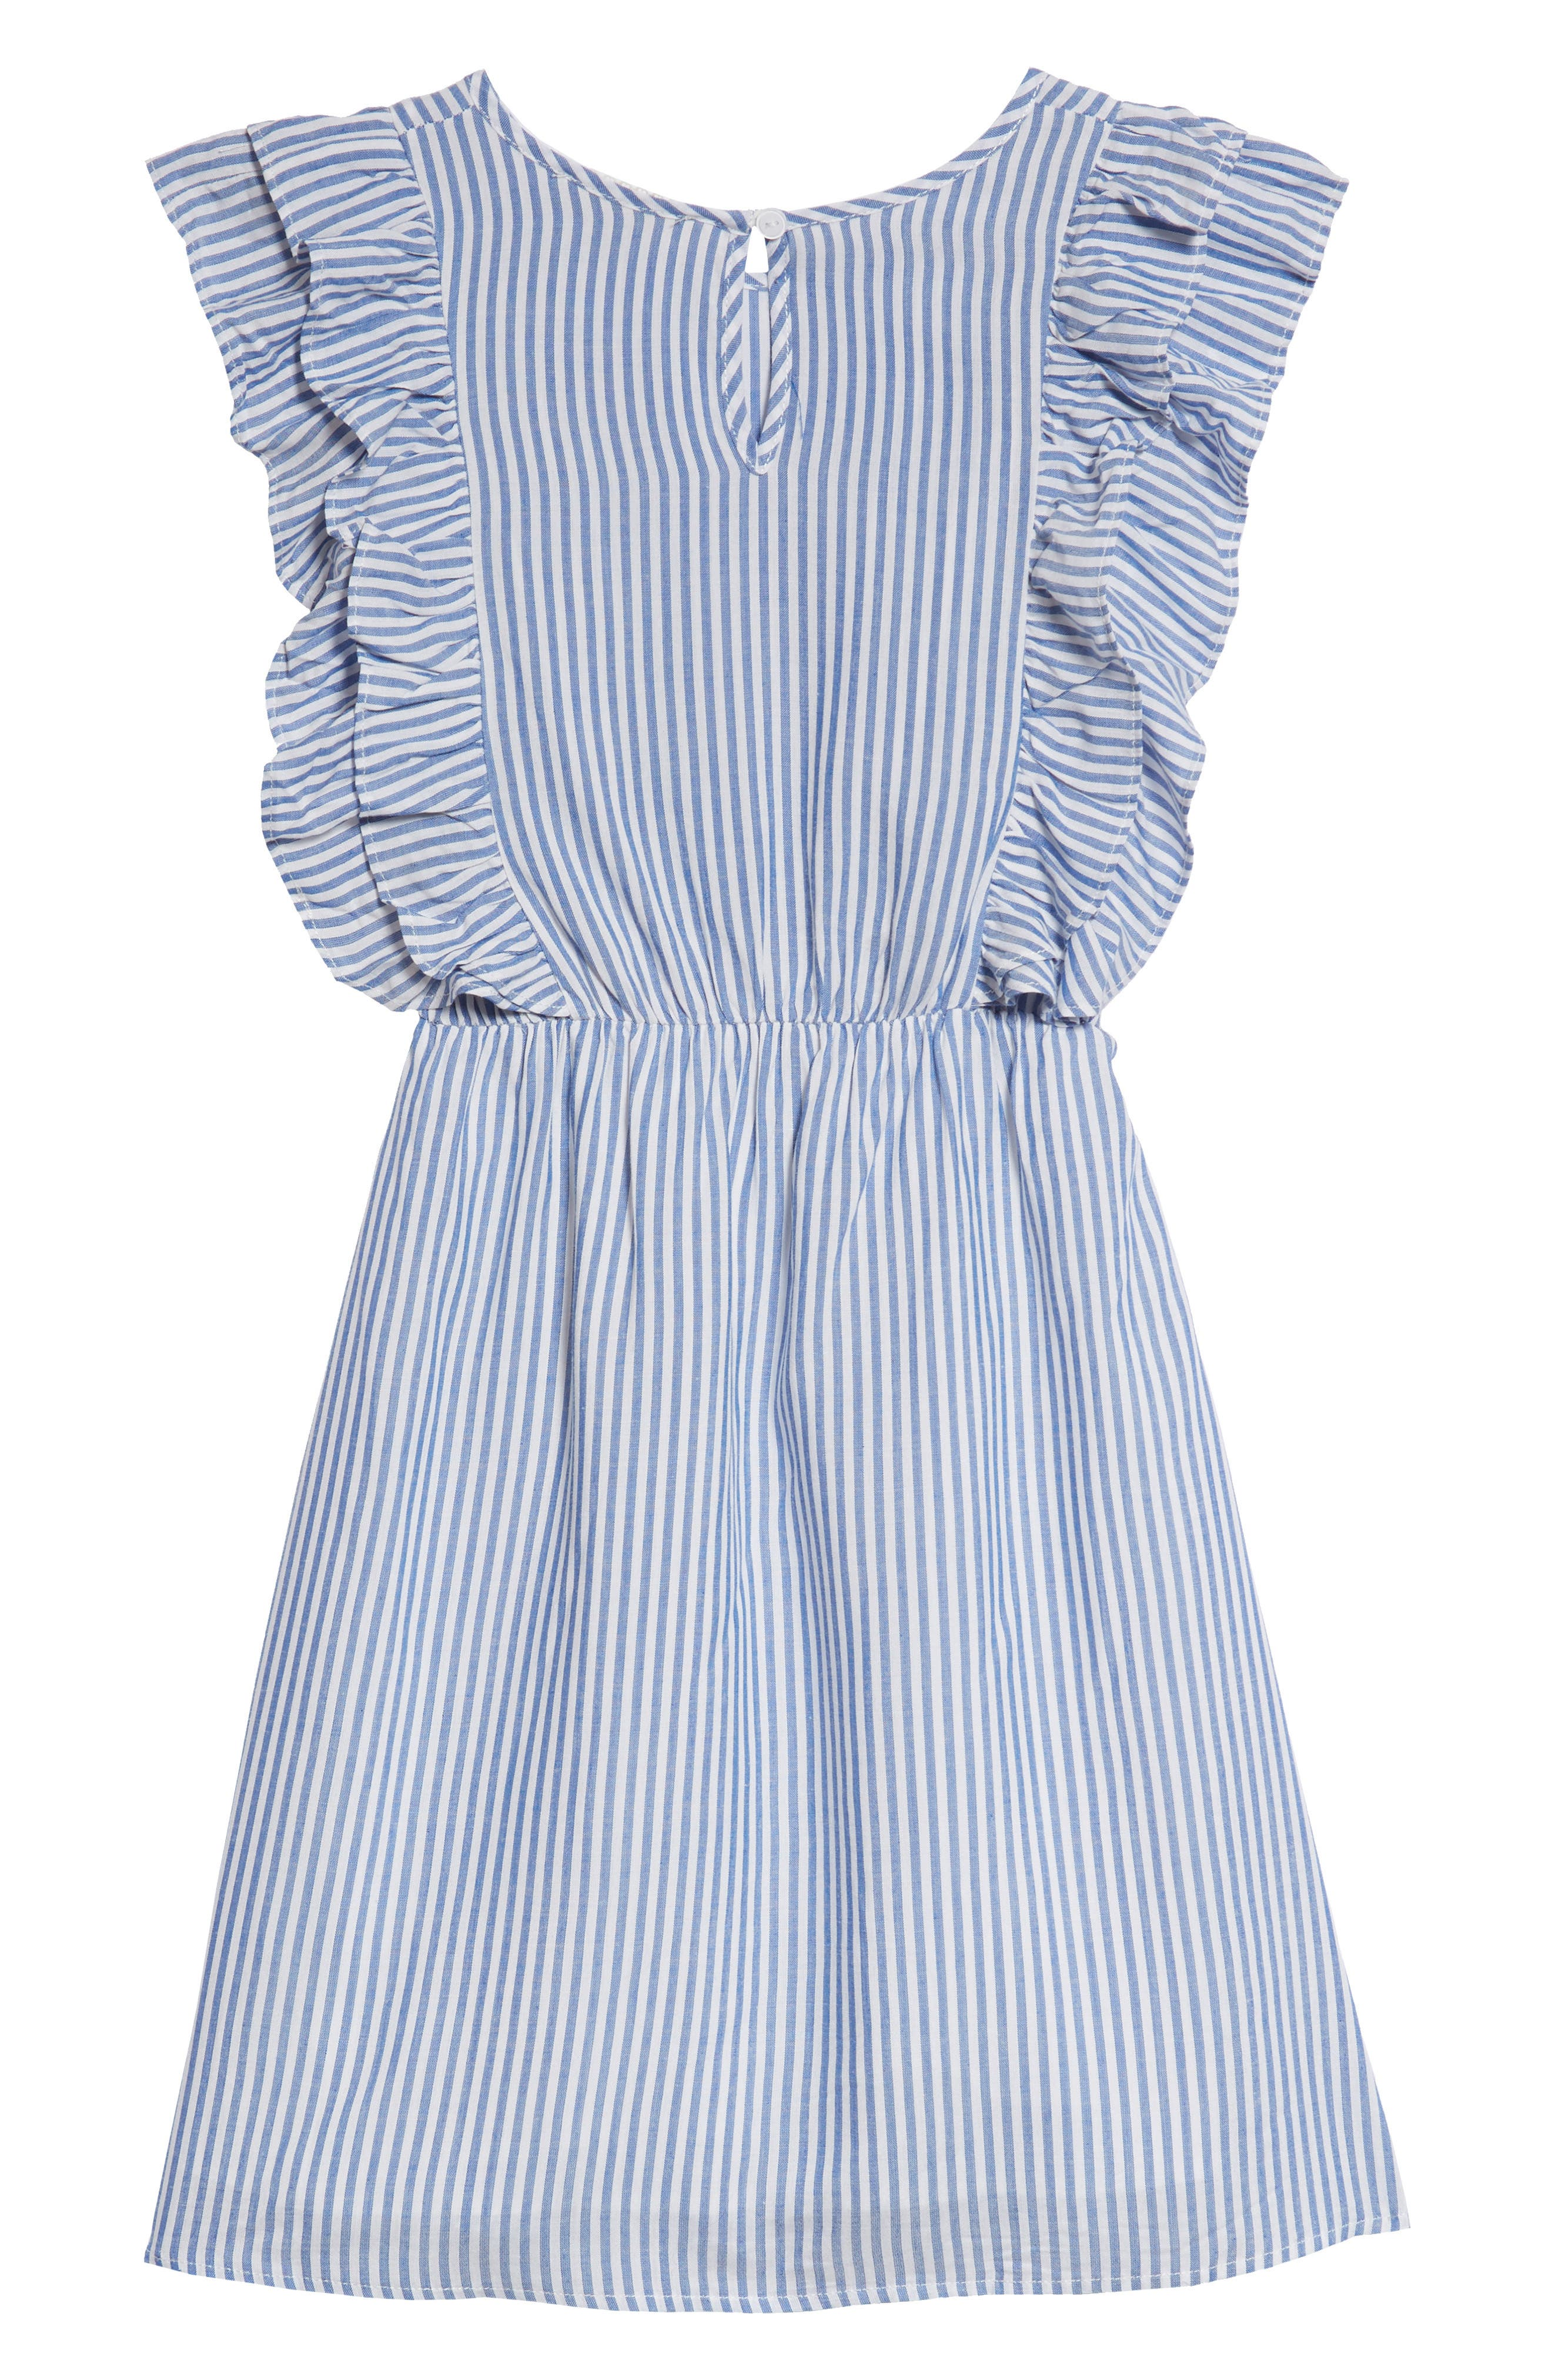 Poplin Stripe Ruffle Dress,                             Alternate thumbnail 2, color,